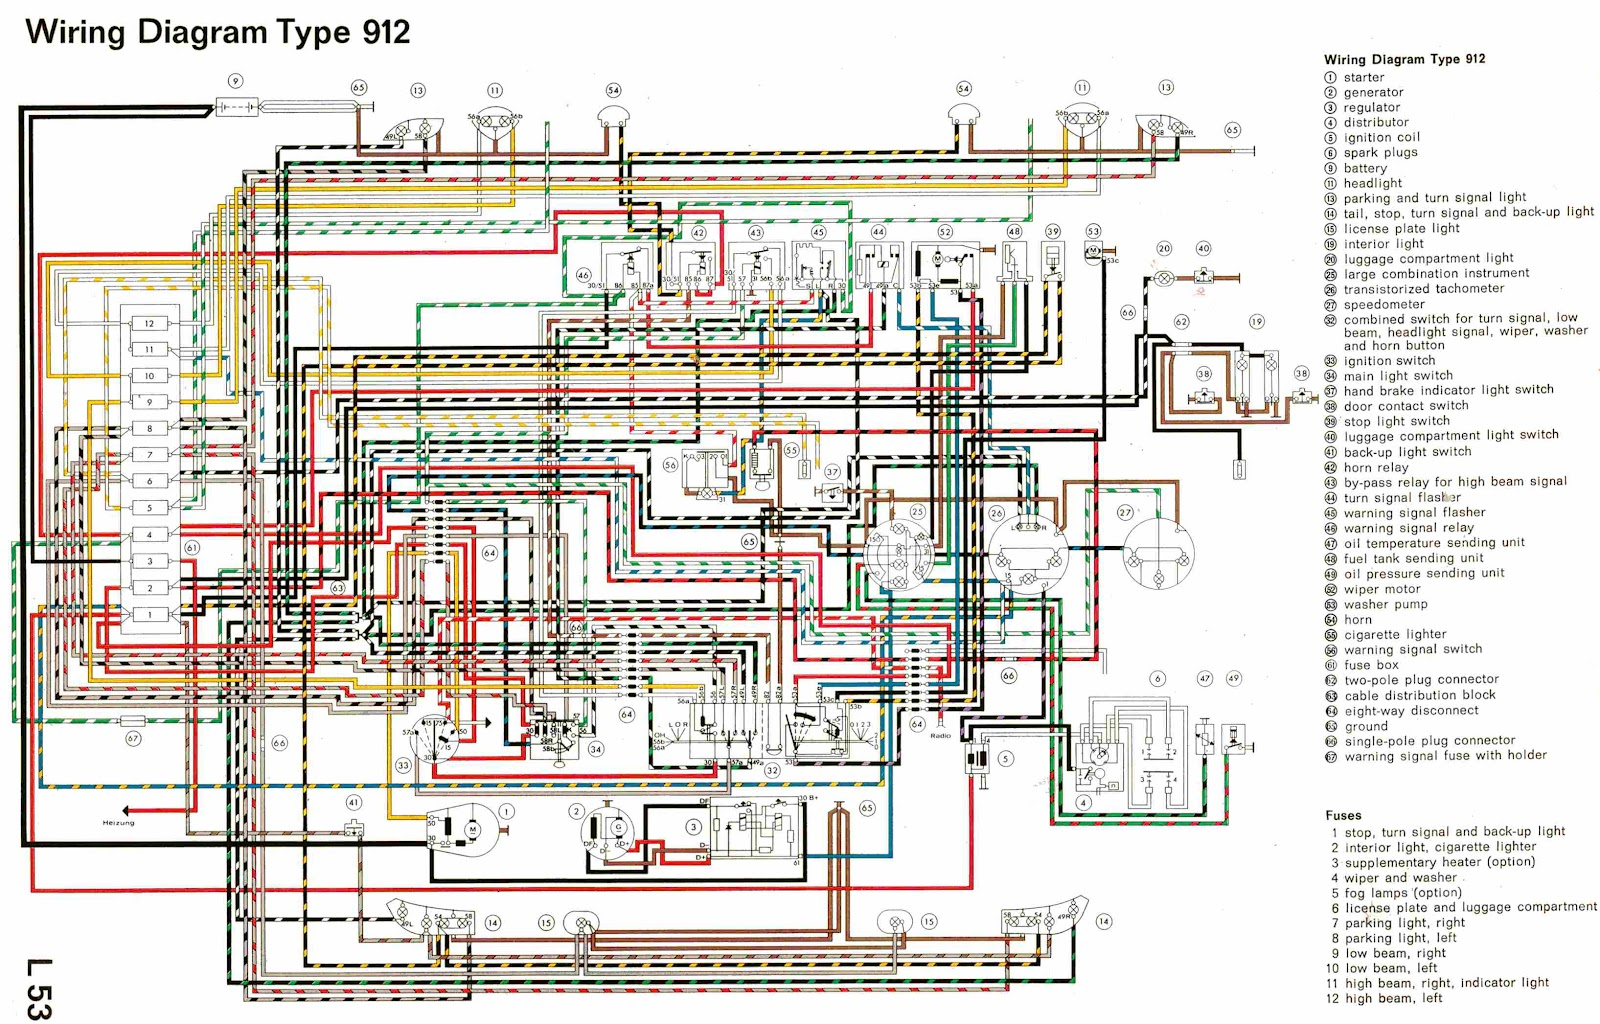 2006 yfz 450 wiring diagram 3 phase to single transformer porsche type 912 complete electrical | all about diagrams